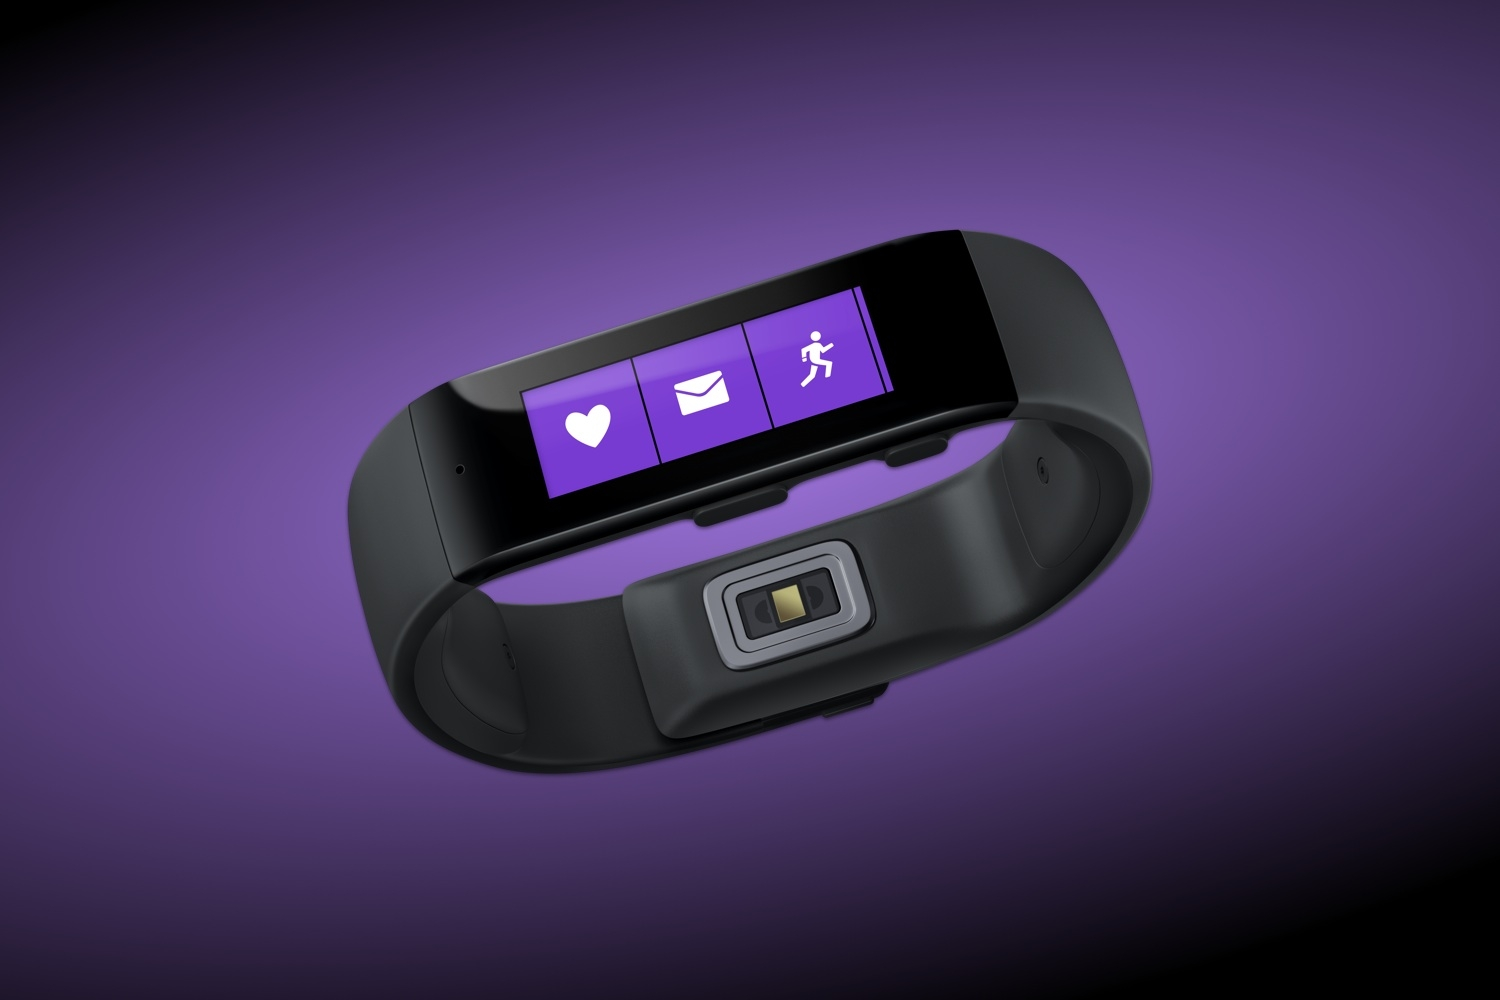 Microsoft Band Apple Watch competitor